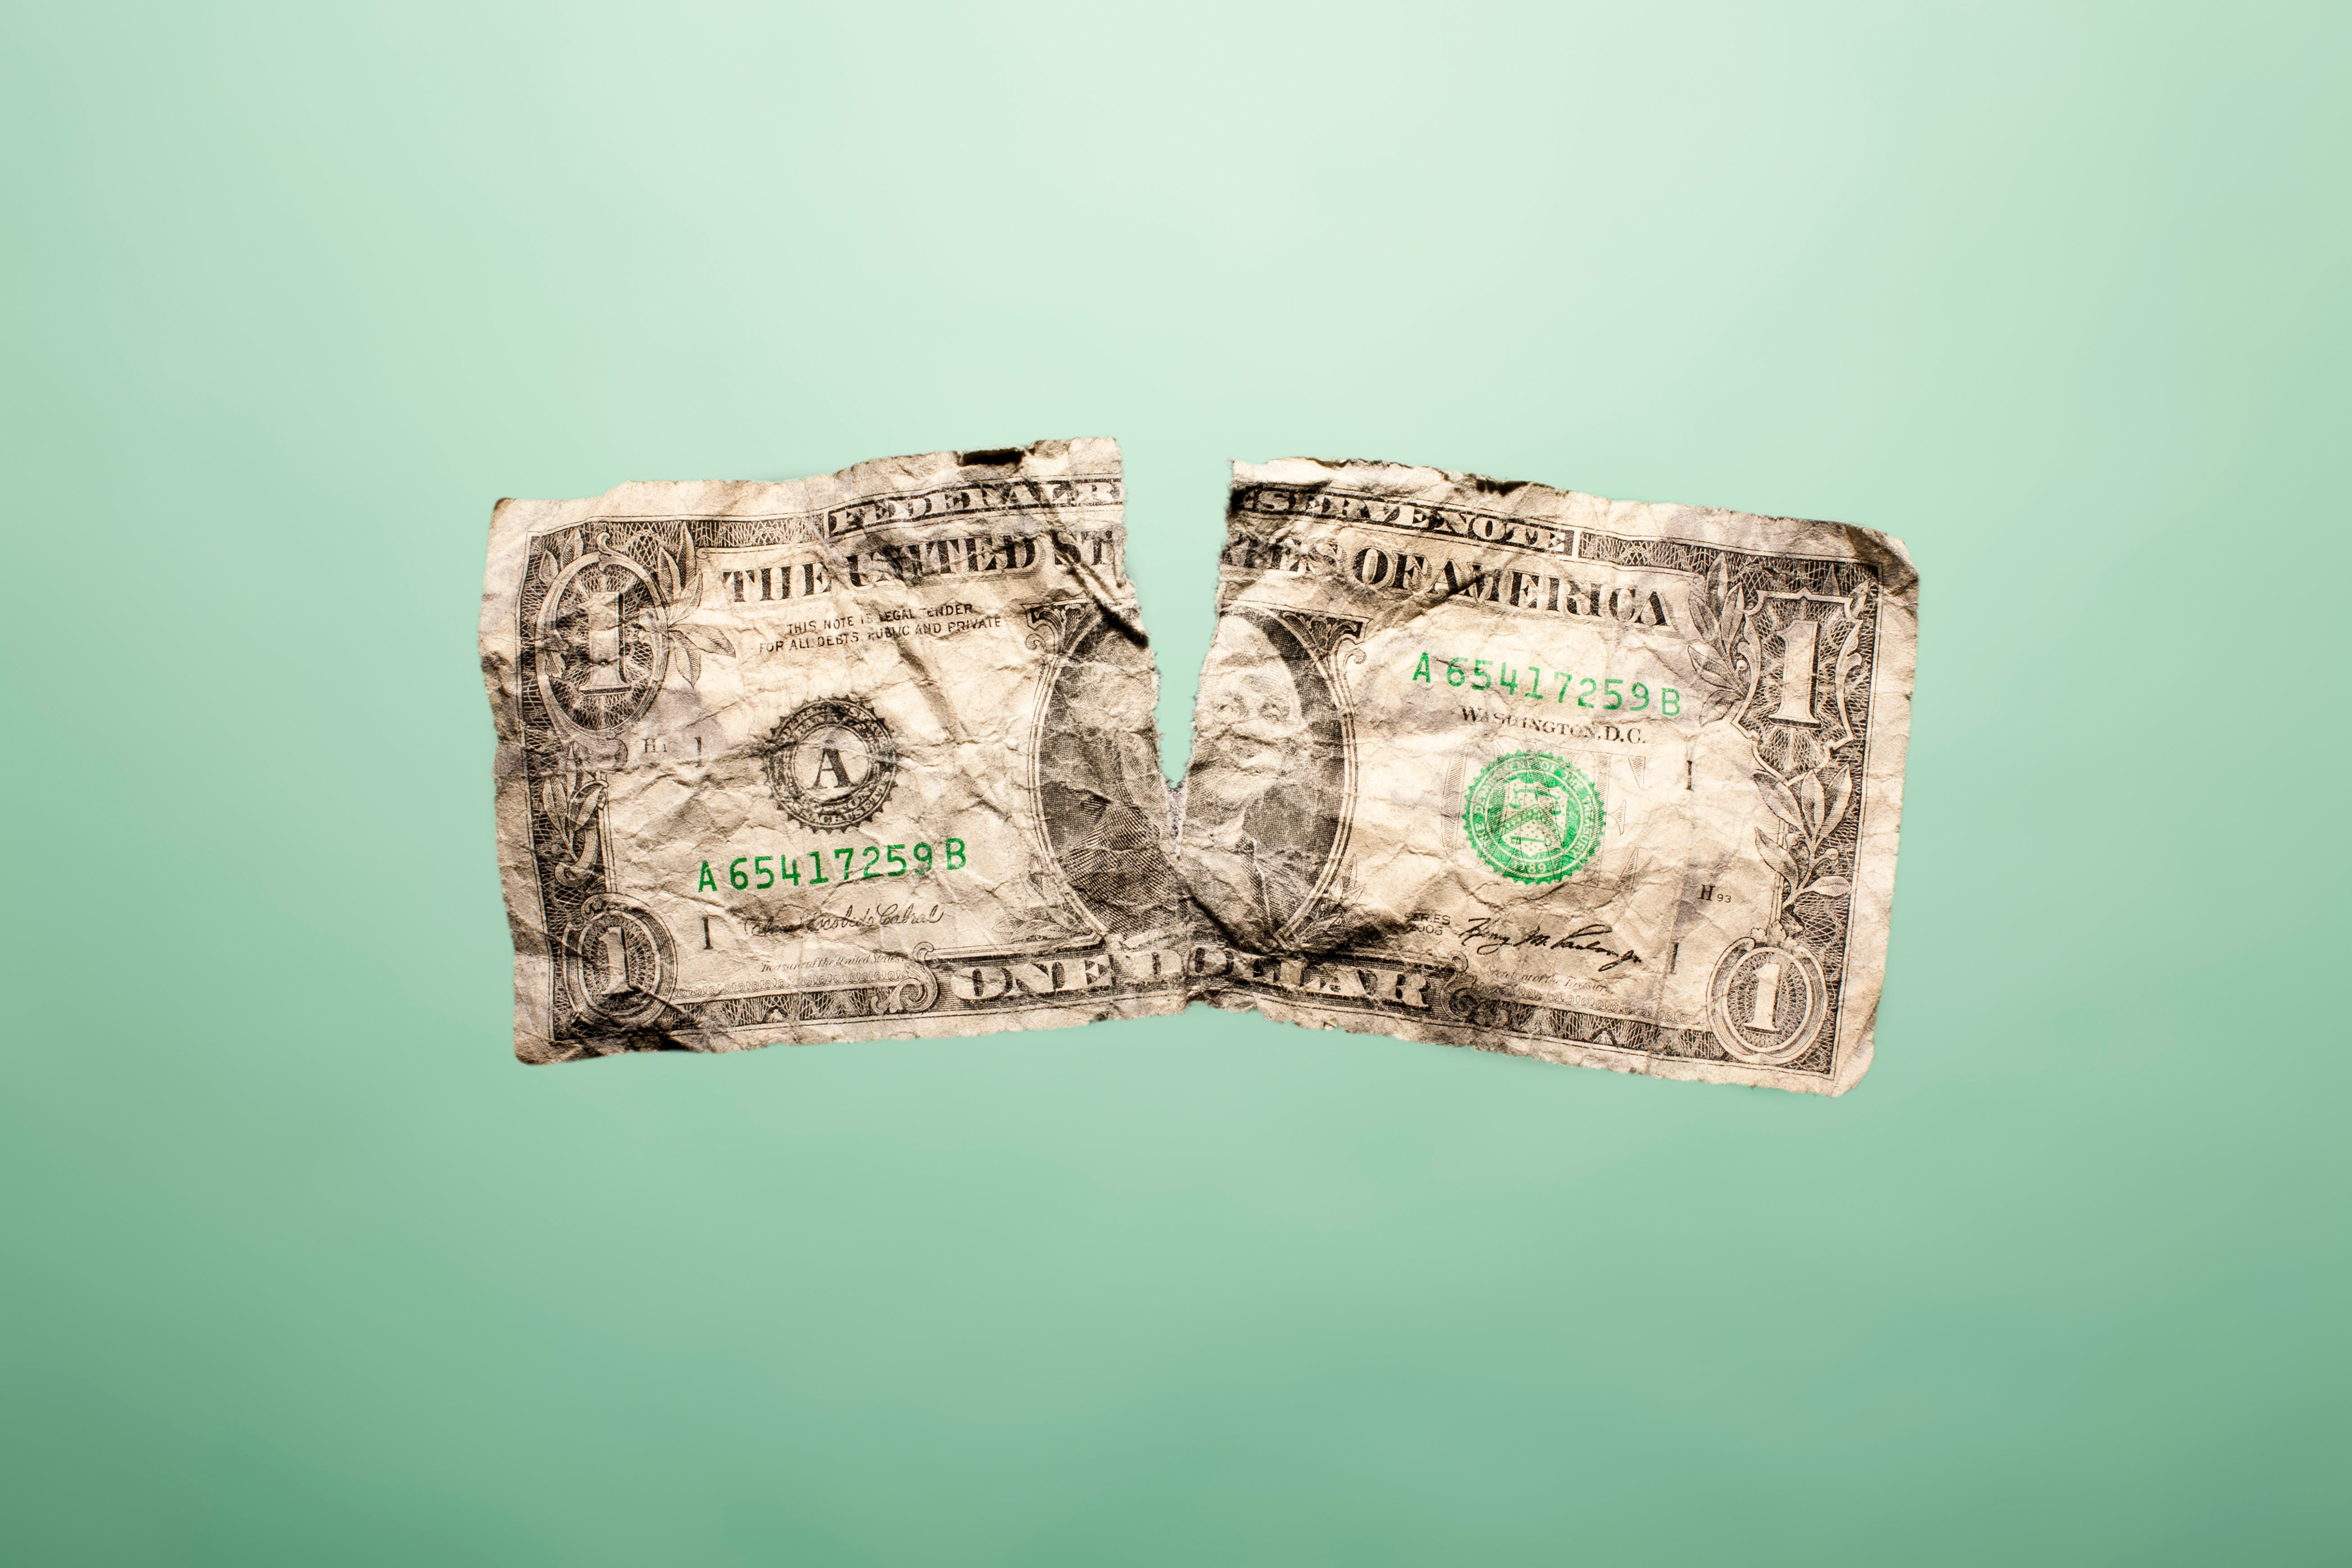 The Root Cause Of Your Money Problems Could Be An Actual Money Disorder